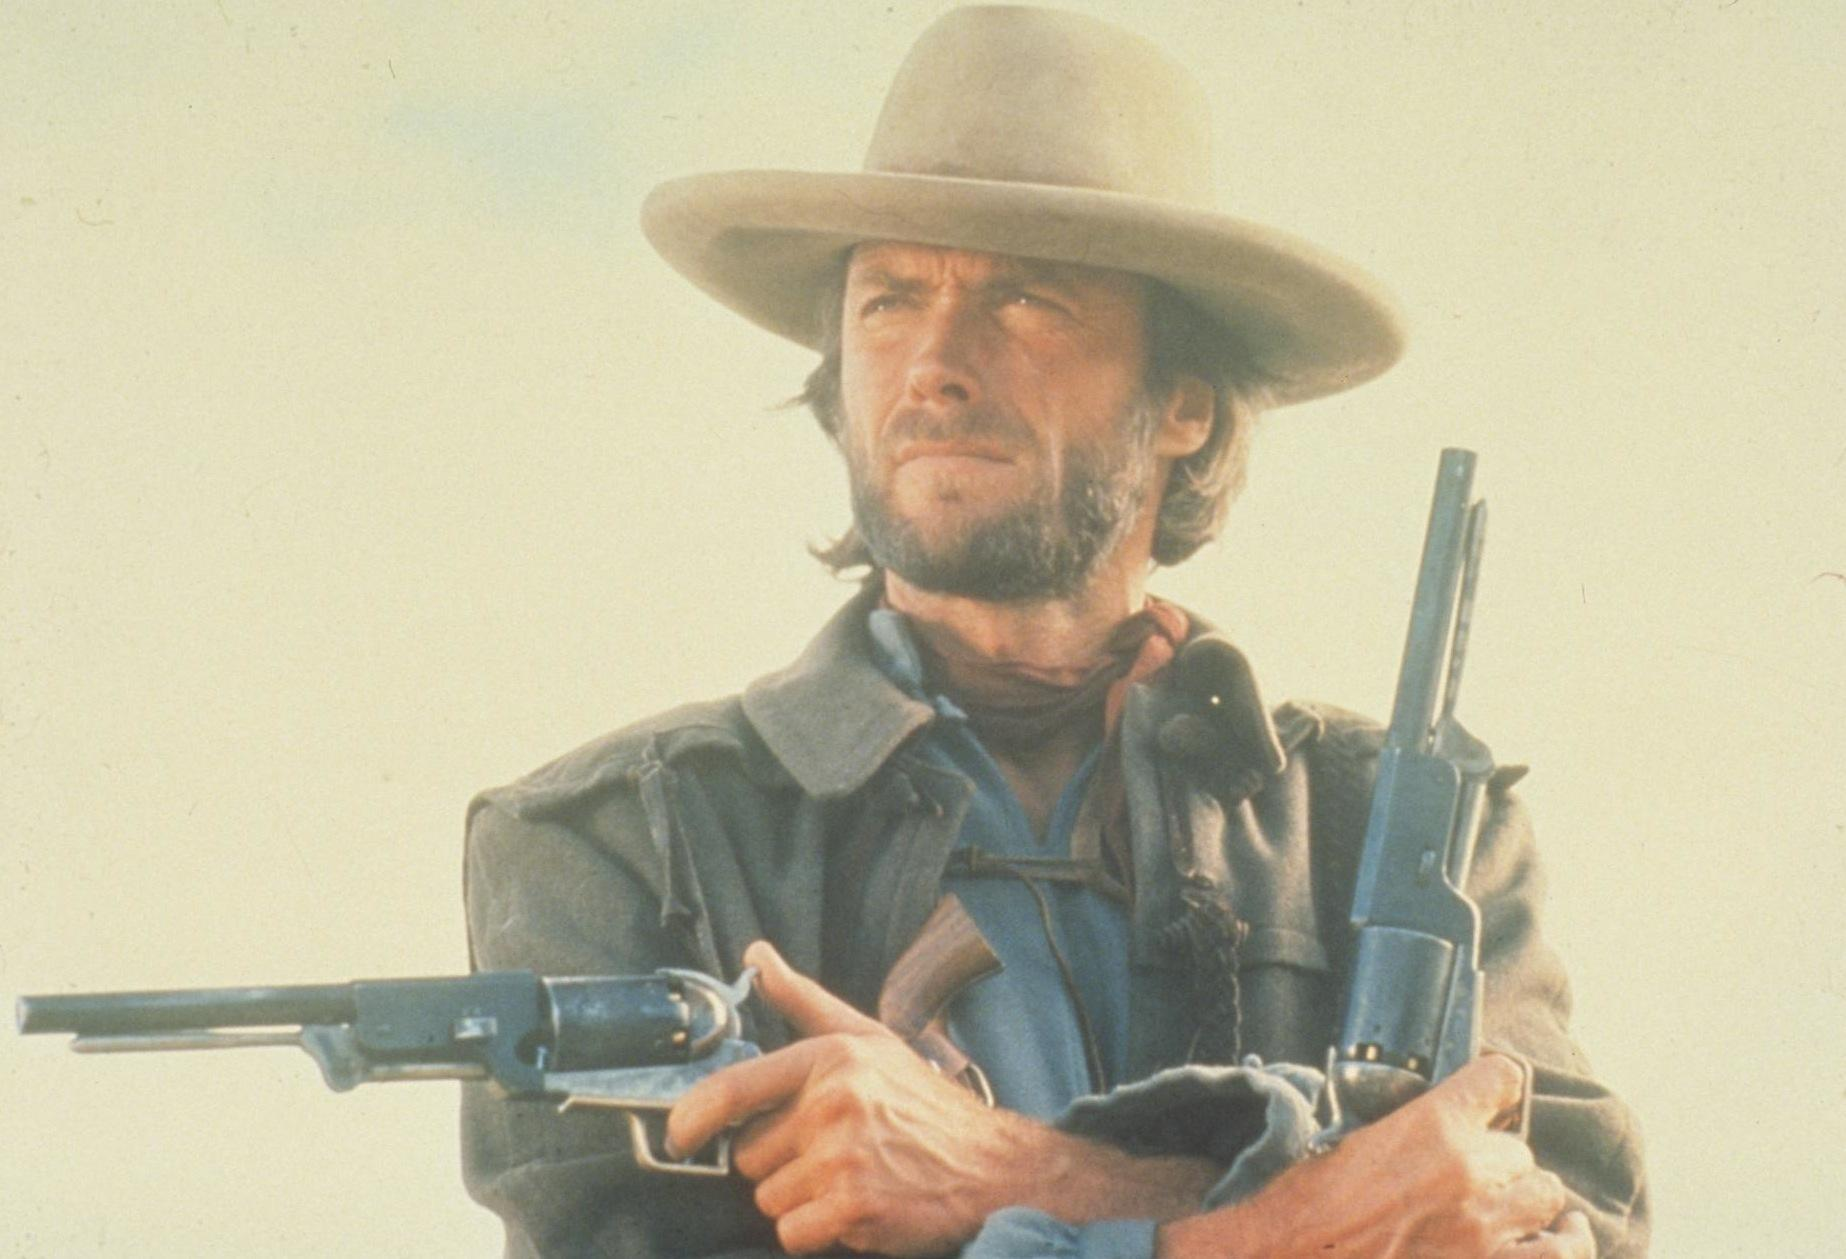 The Outlaw Josey Wales Wallpaper The outlaw josey wales in 1846x1259